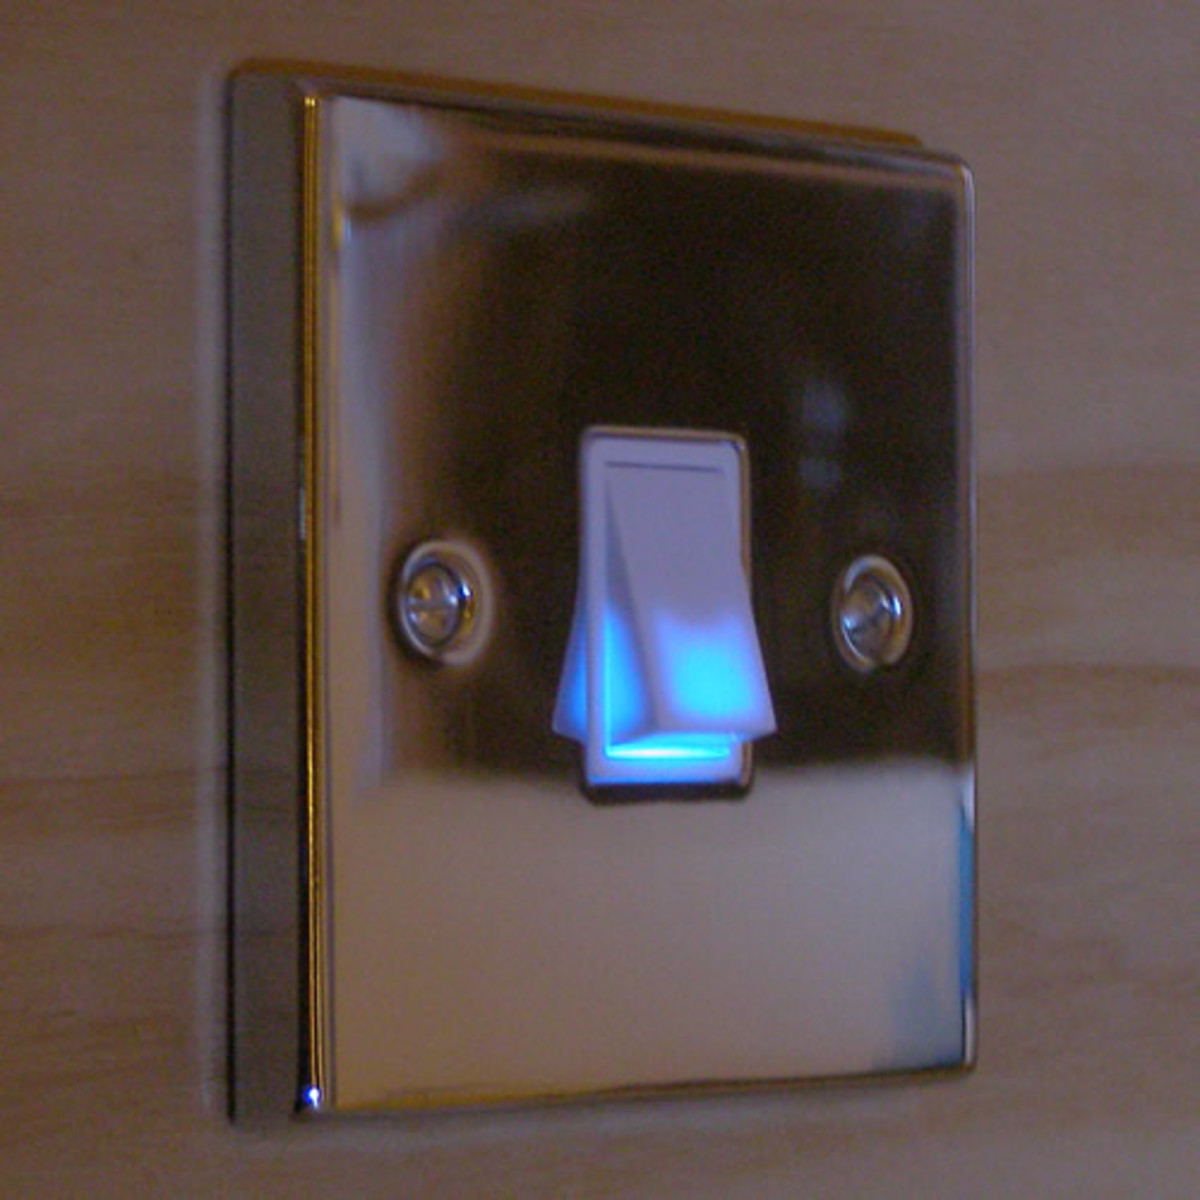 An illuminated light switch from the UK